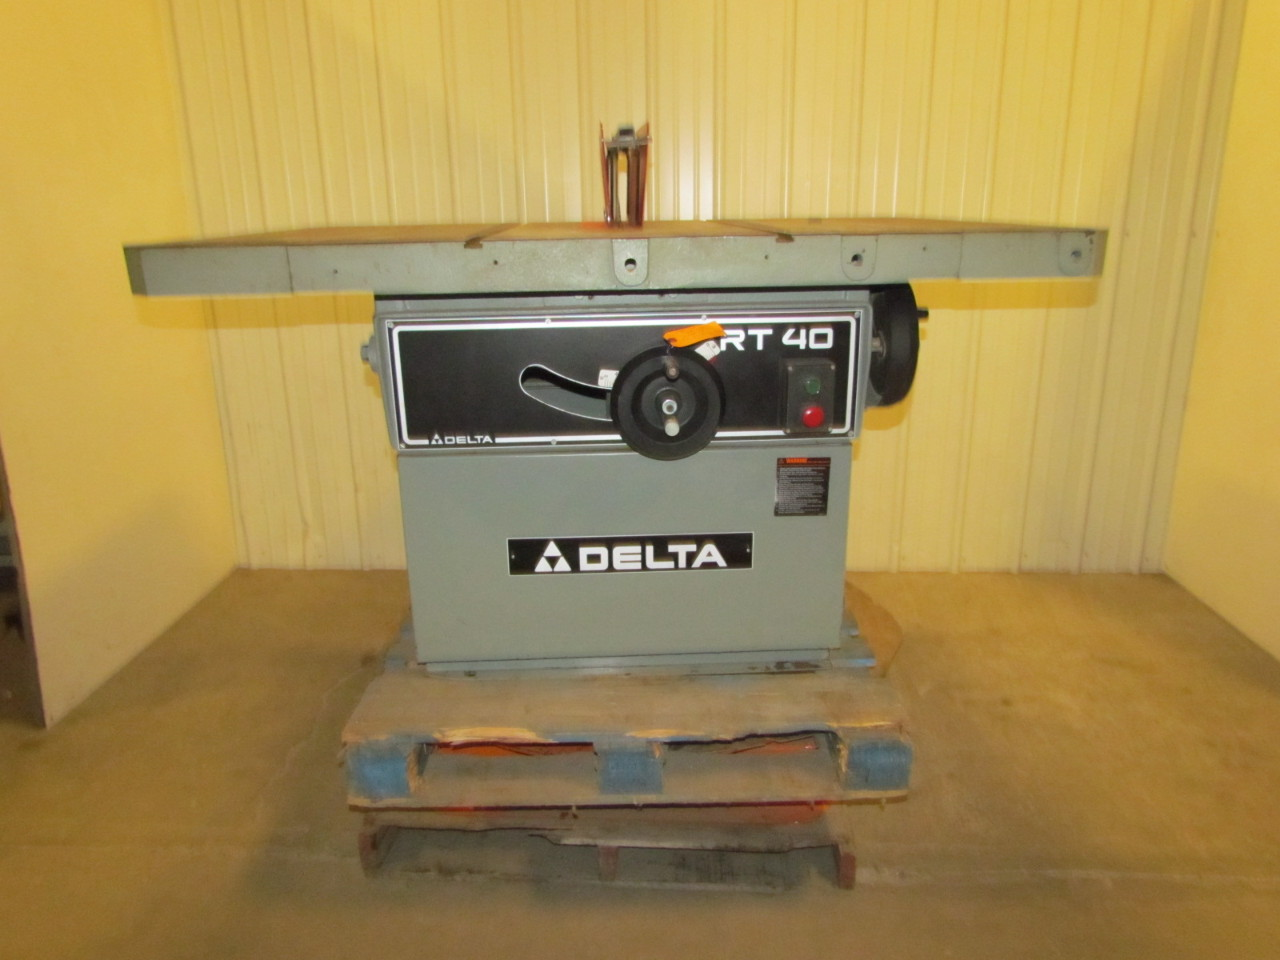 Delta Rt40 Rt 40 36789 14 Tilting Arbor Large Capacity Table Saw 7 1 2 Hp 3ph Ebay